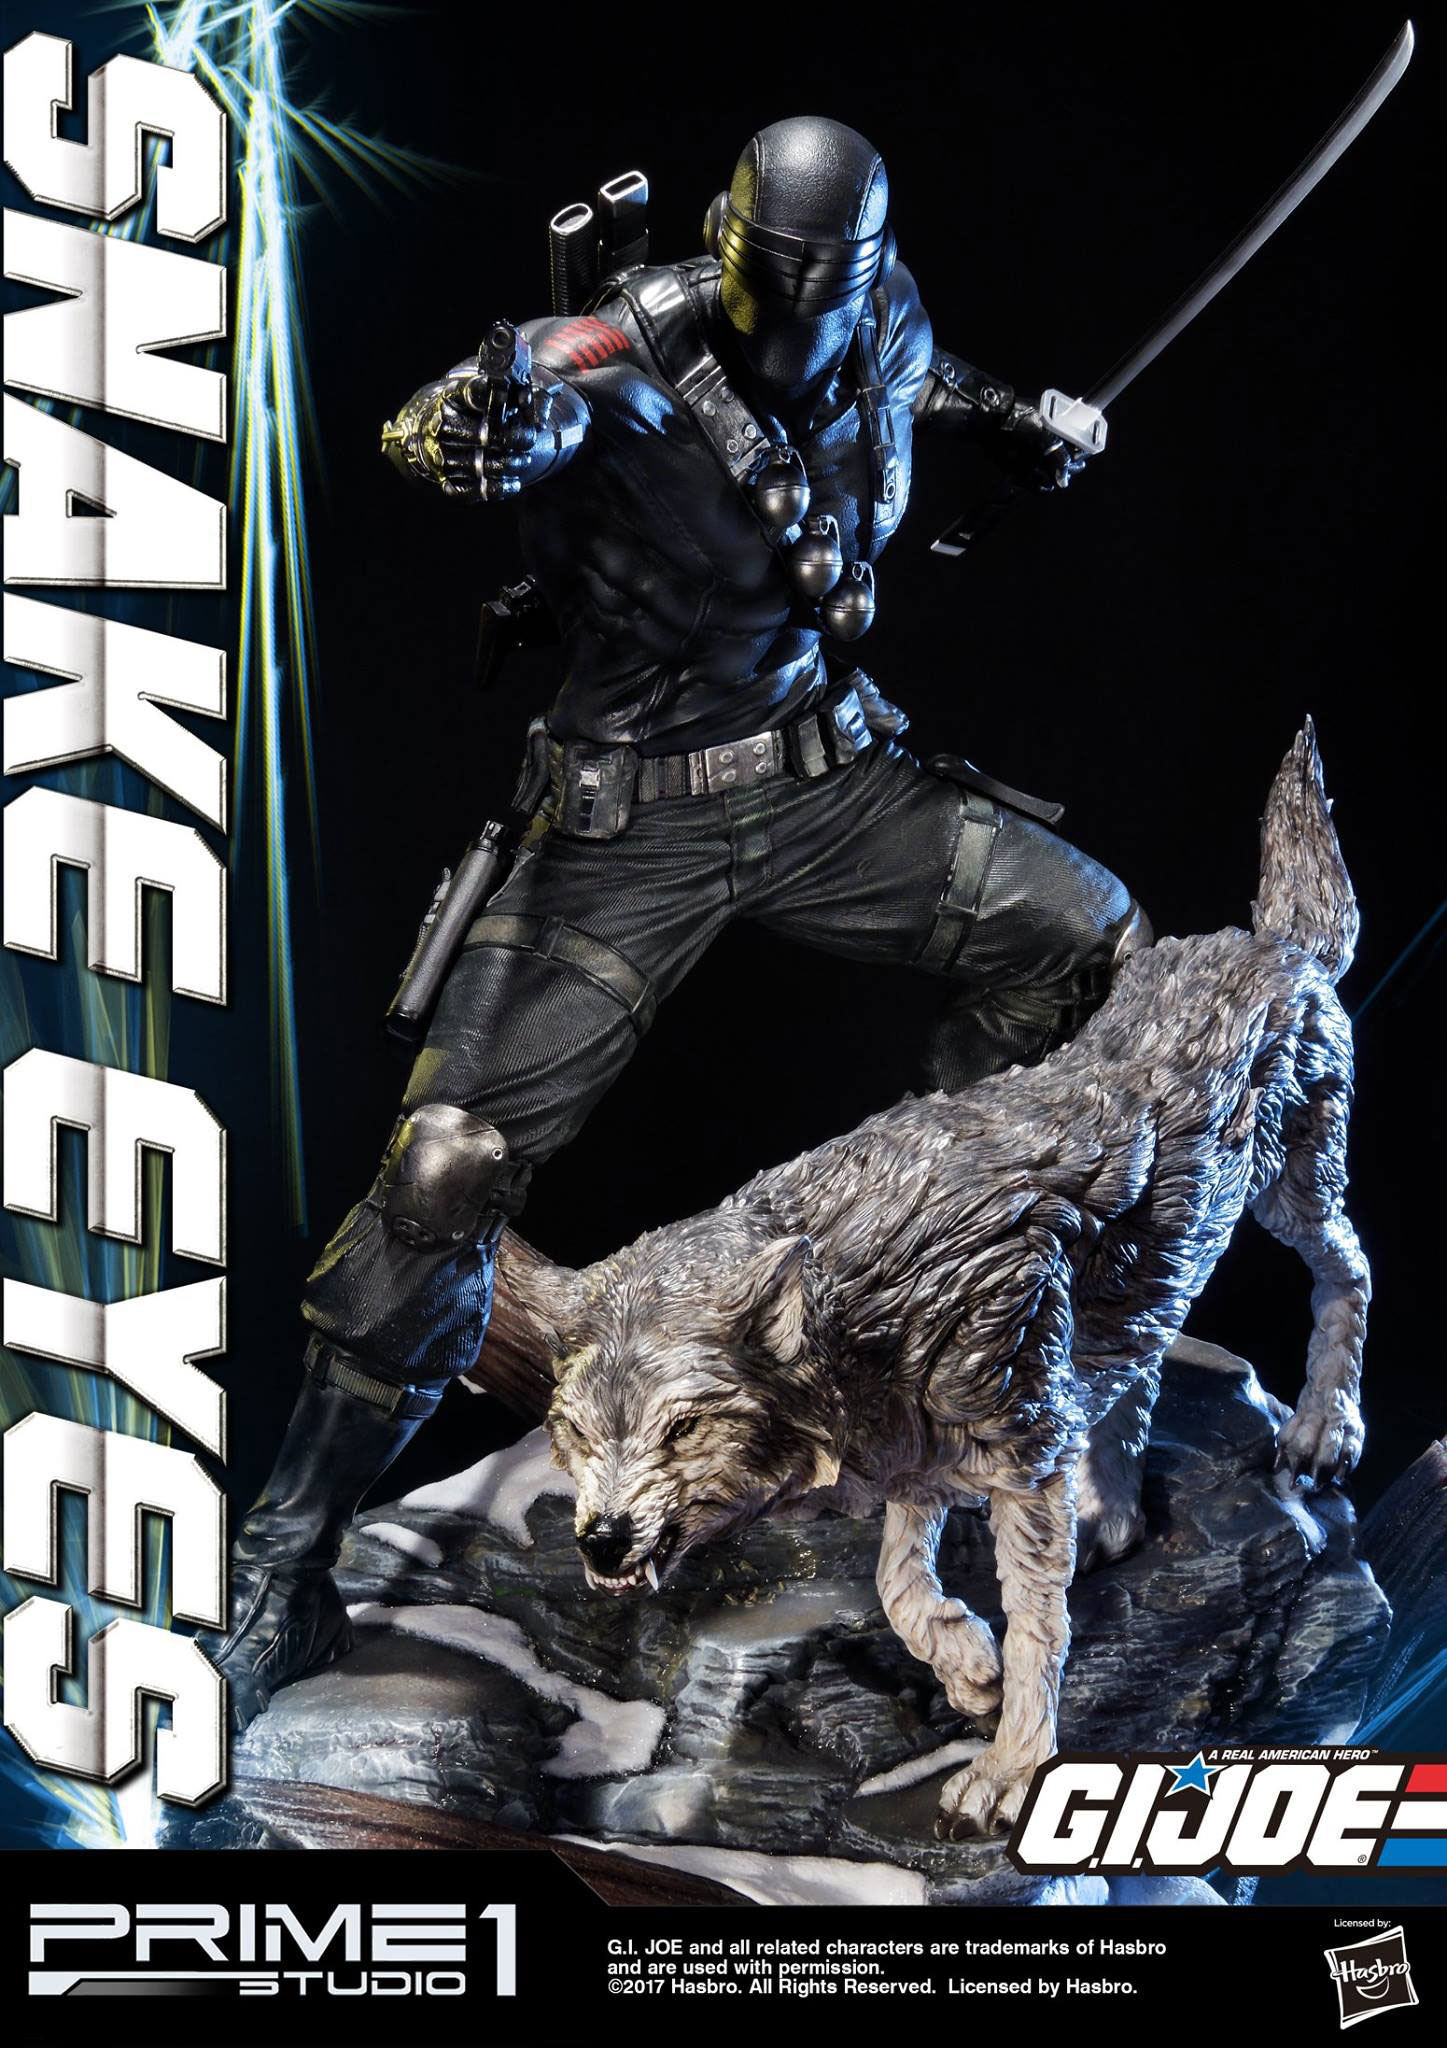 prime-1-studio-snake-eyes-statue-timber-updated-new-photos-5